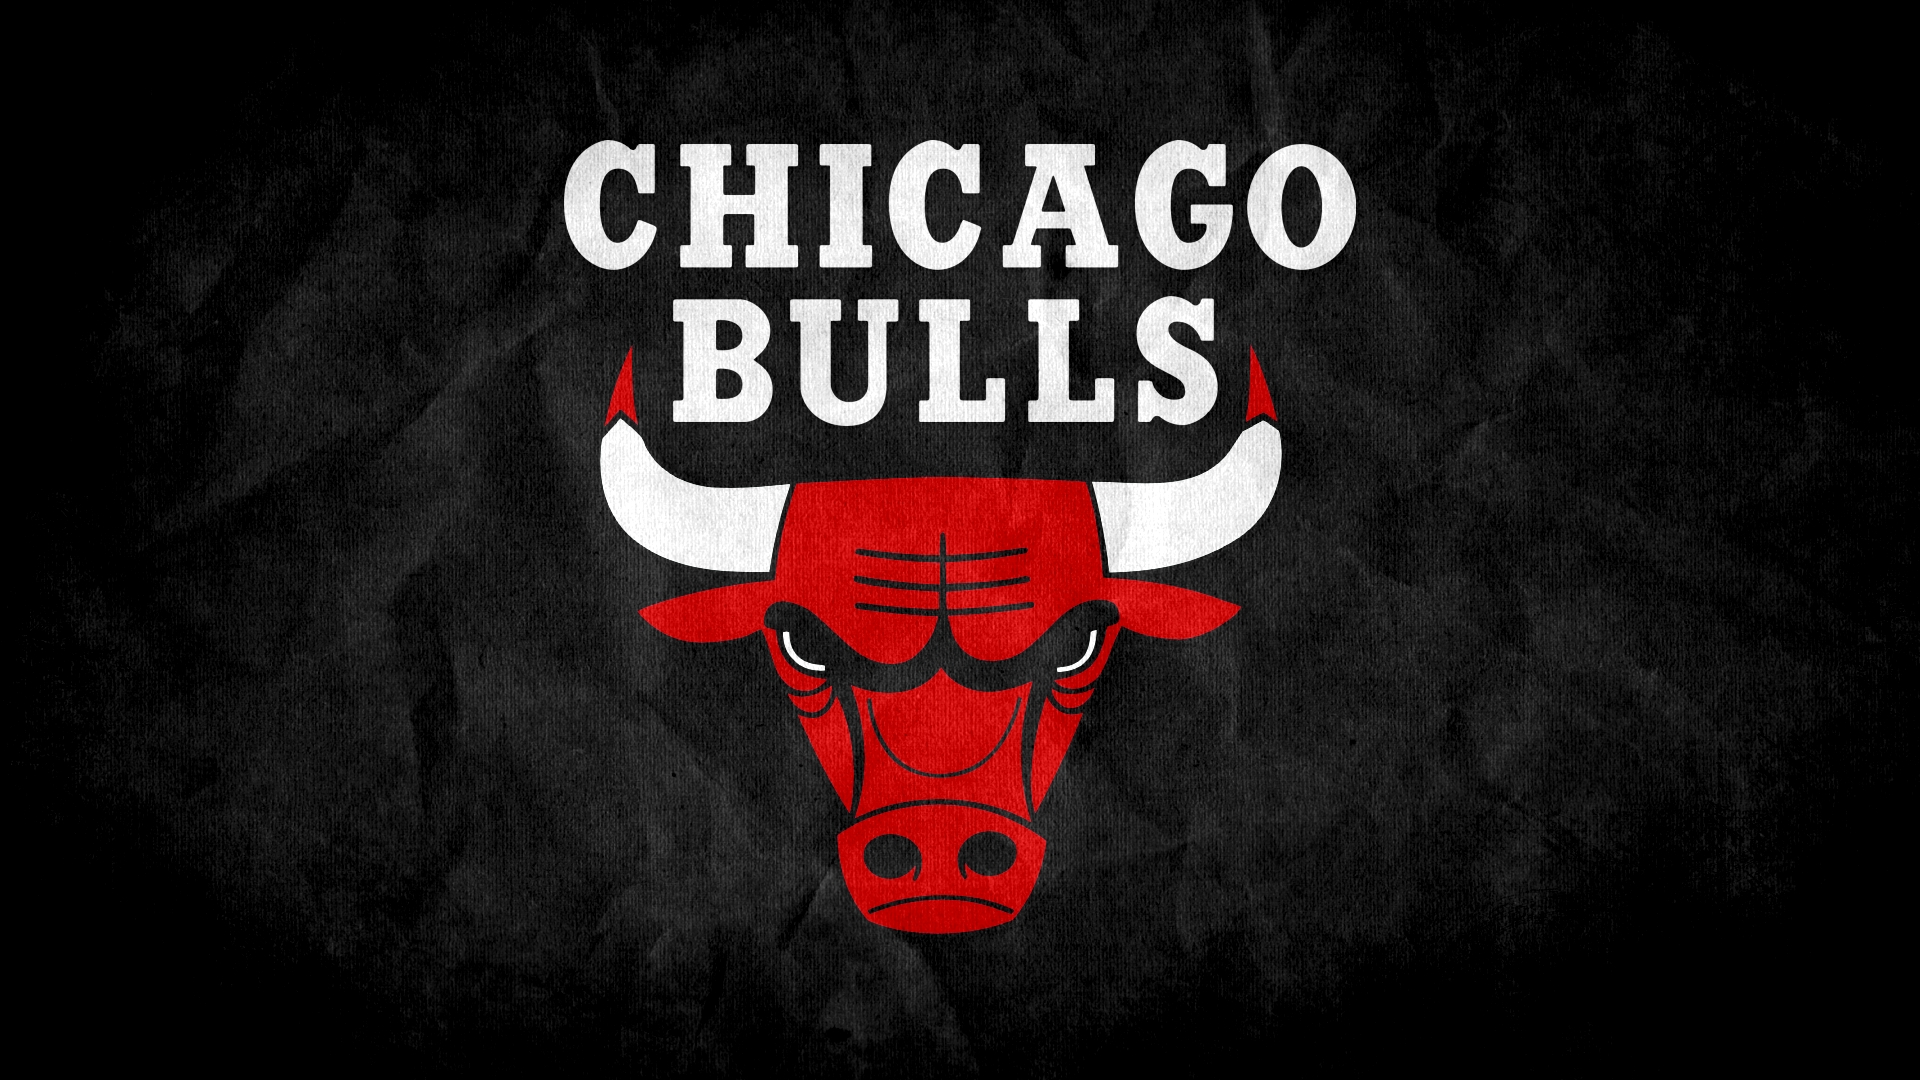 Chicago-Bulls-Wallpaper-HD-1920x1080.jpg